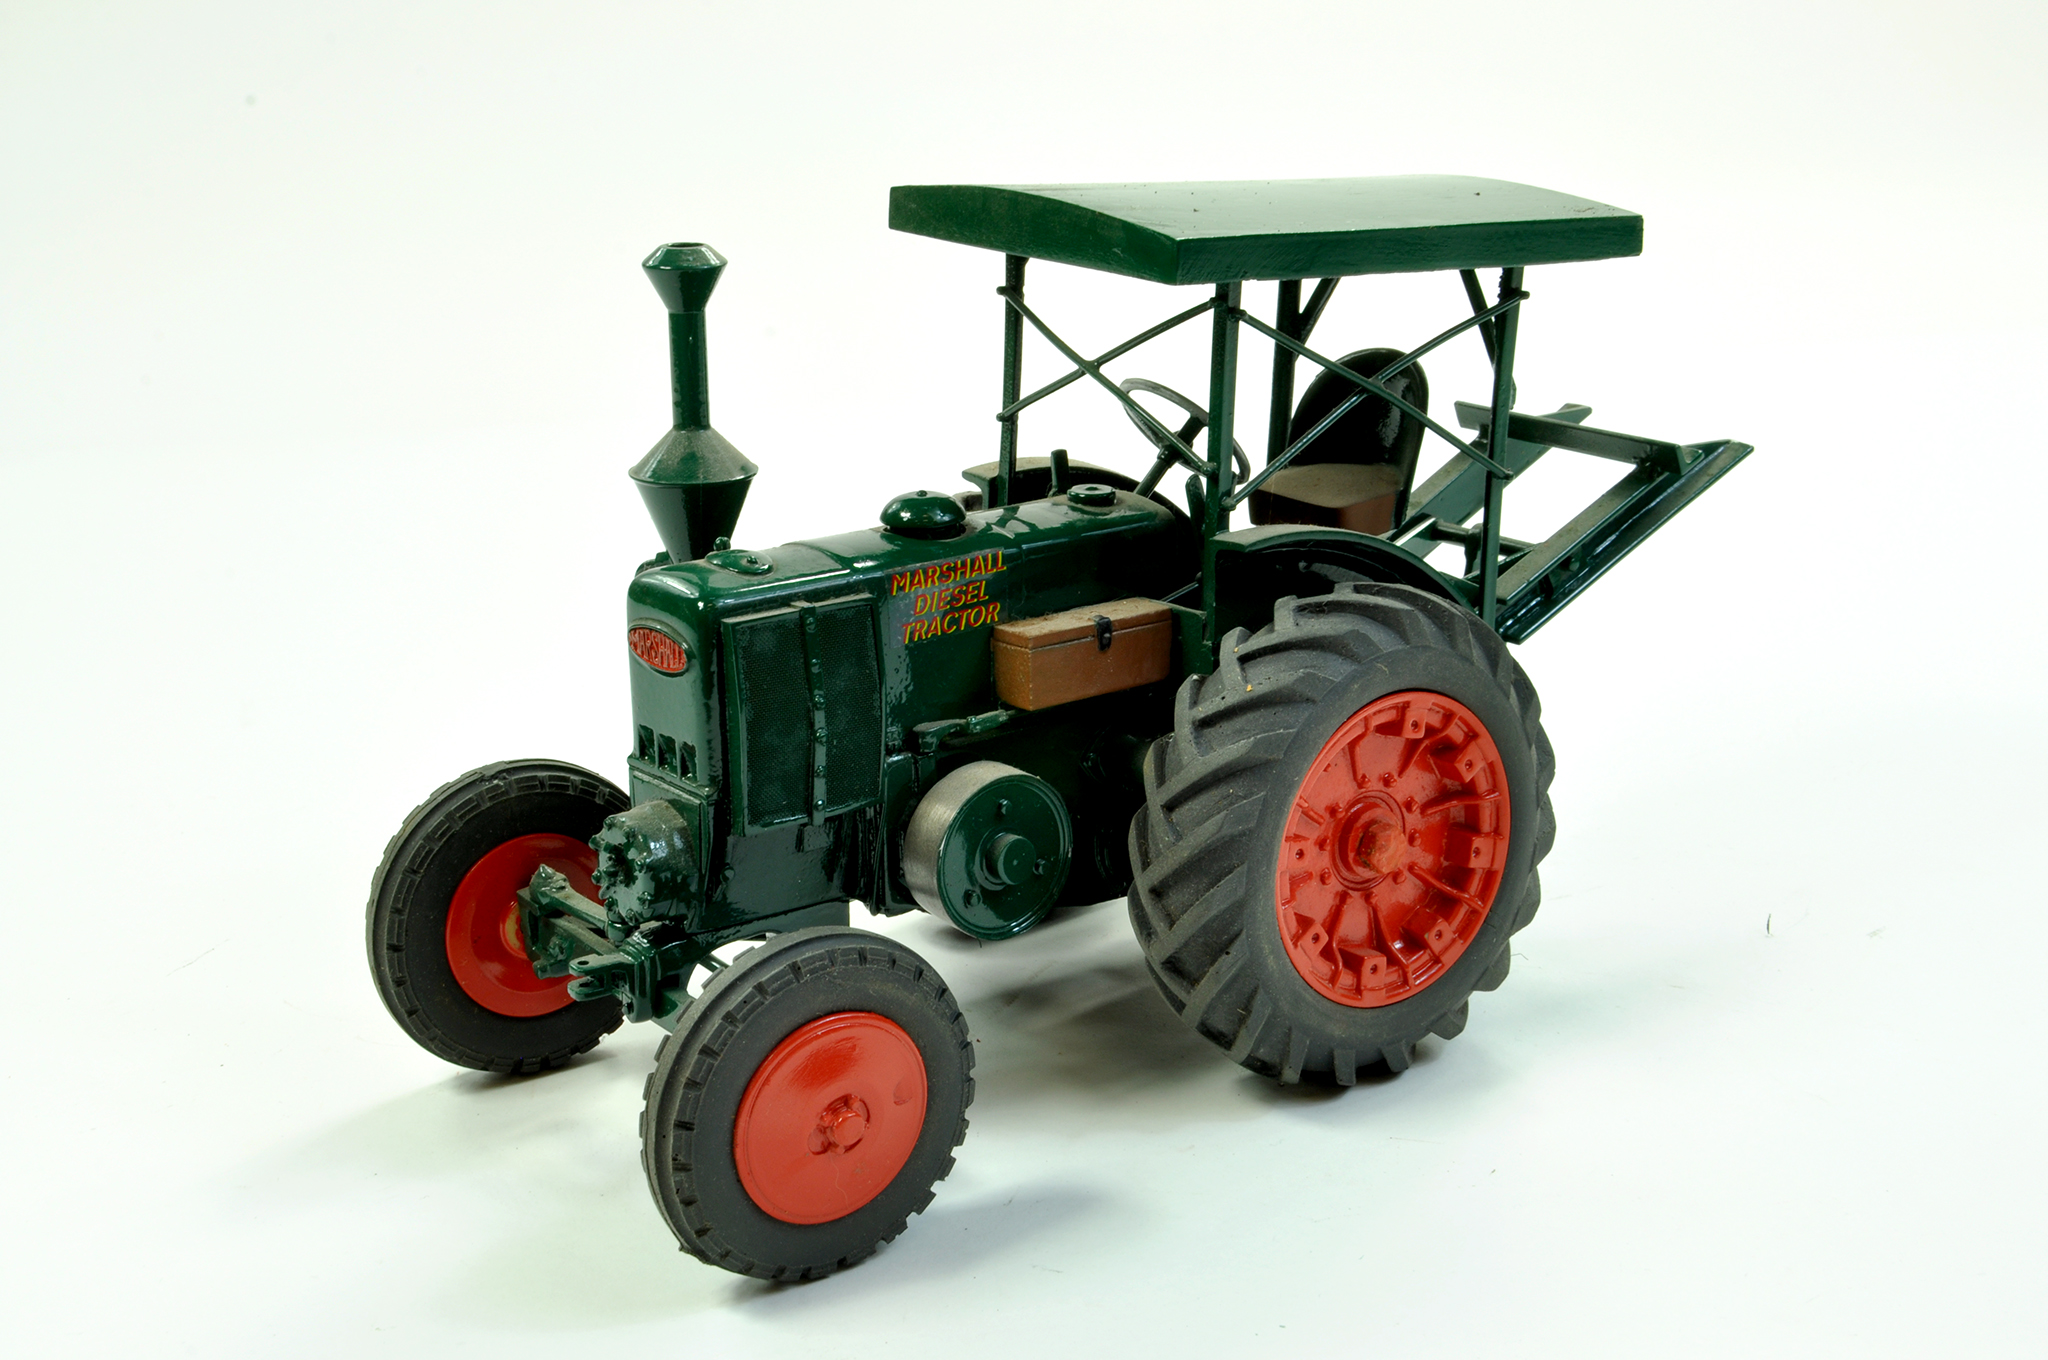 Lot 39 - CTF (France) 1/16 Marshall Model M Diesel Tractor with Canopy and Rear Winch. This exclusive piece